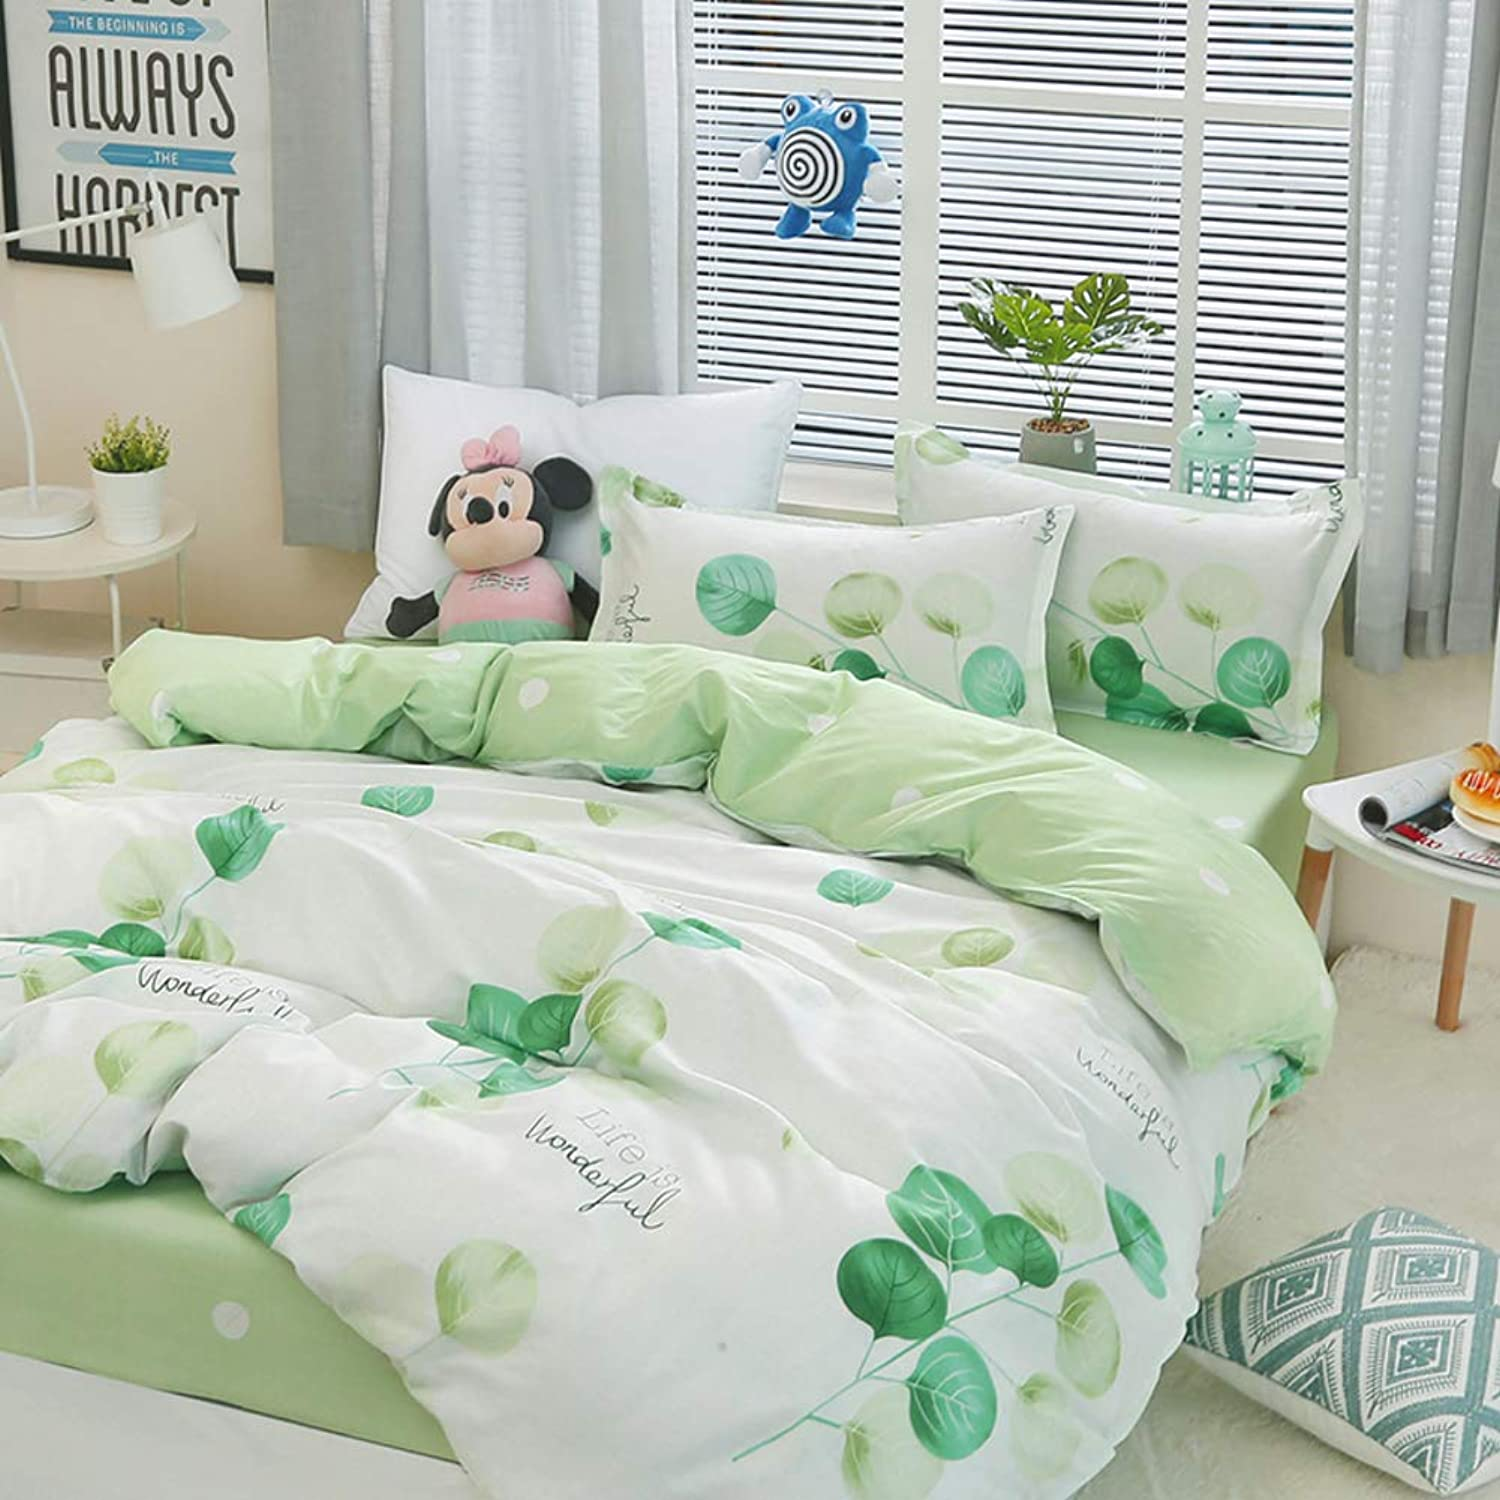 Cotton Duvet Cover Set,Bedding Single Bed Set Three Piece Student Dormitory Single Quilt Cover SheetsU Twin Size